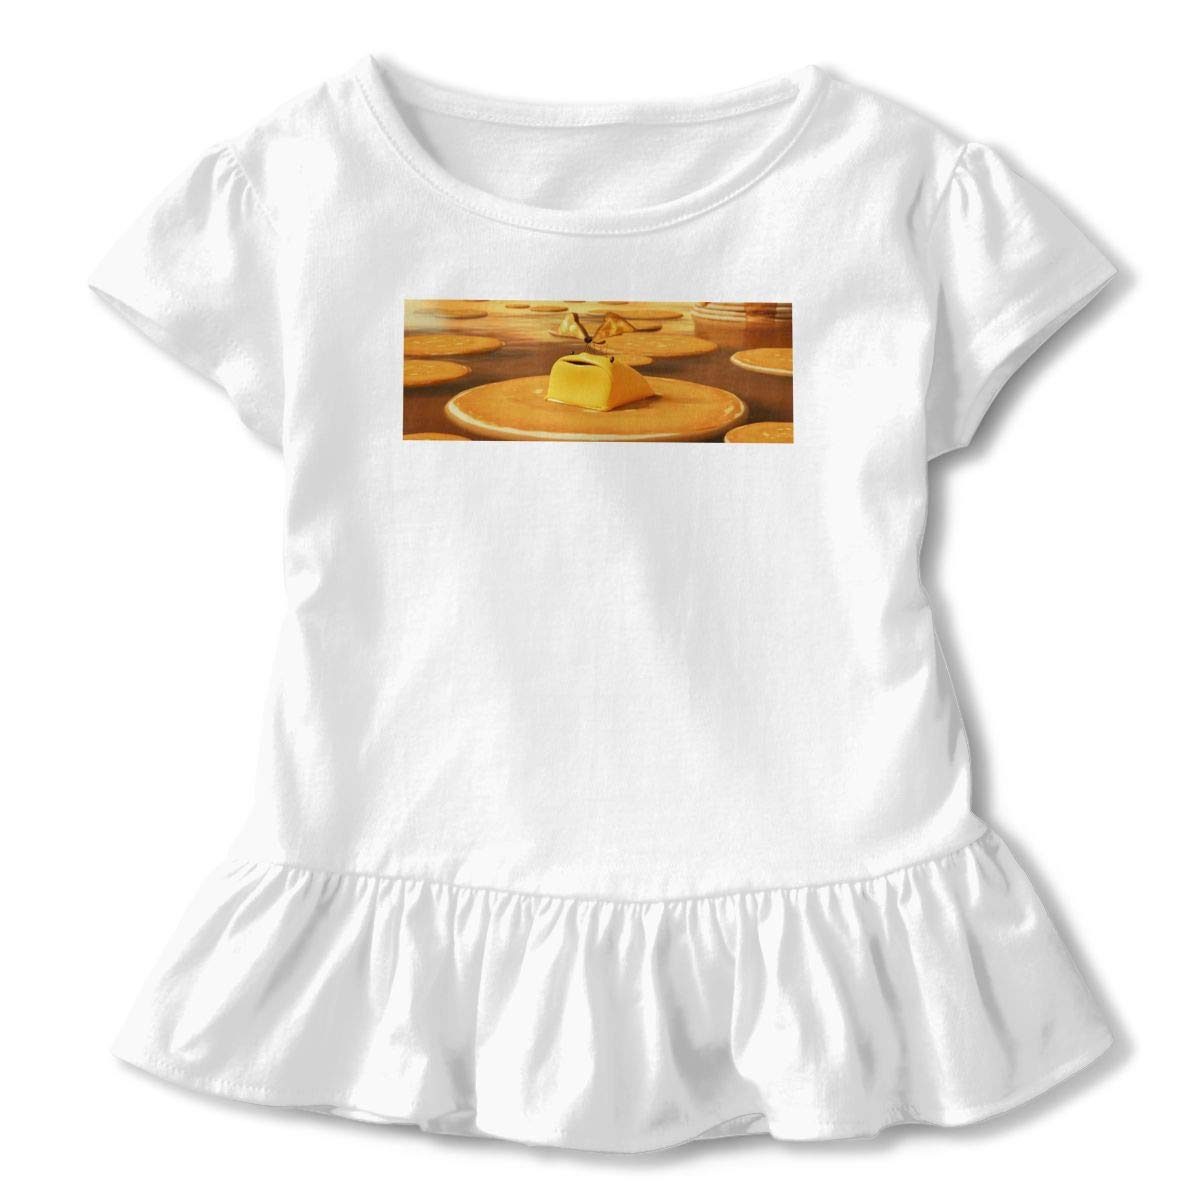 Rjmyys Personalized Cloudy with A Chance of Meatballs Funny Shirt O-Neck for Minor Black